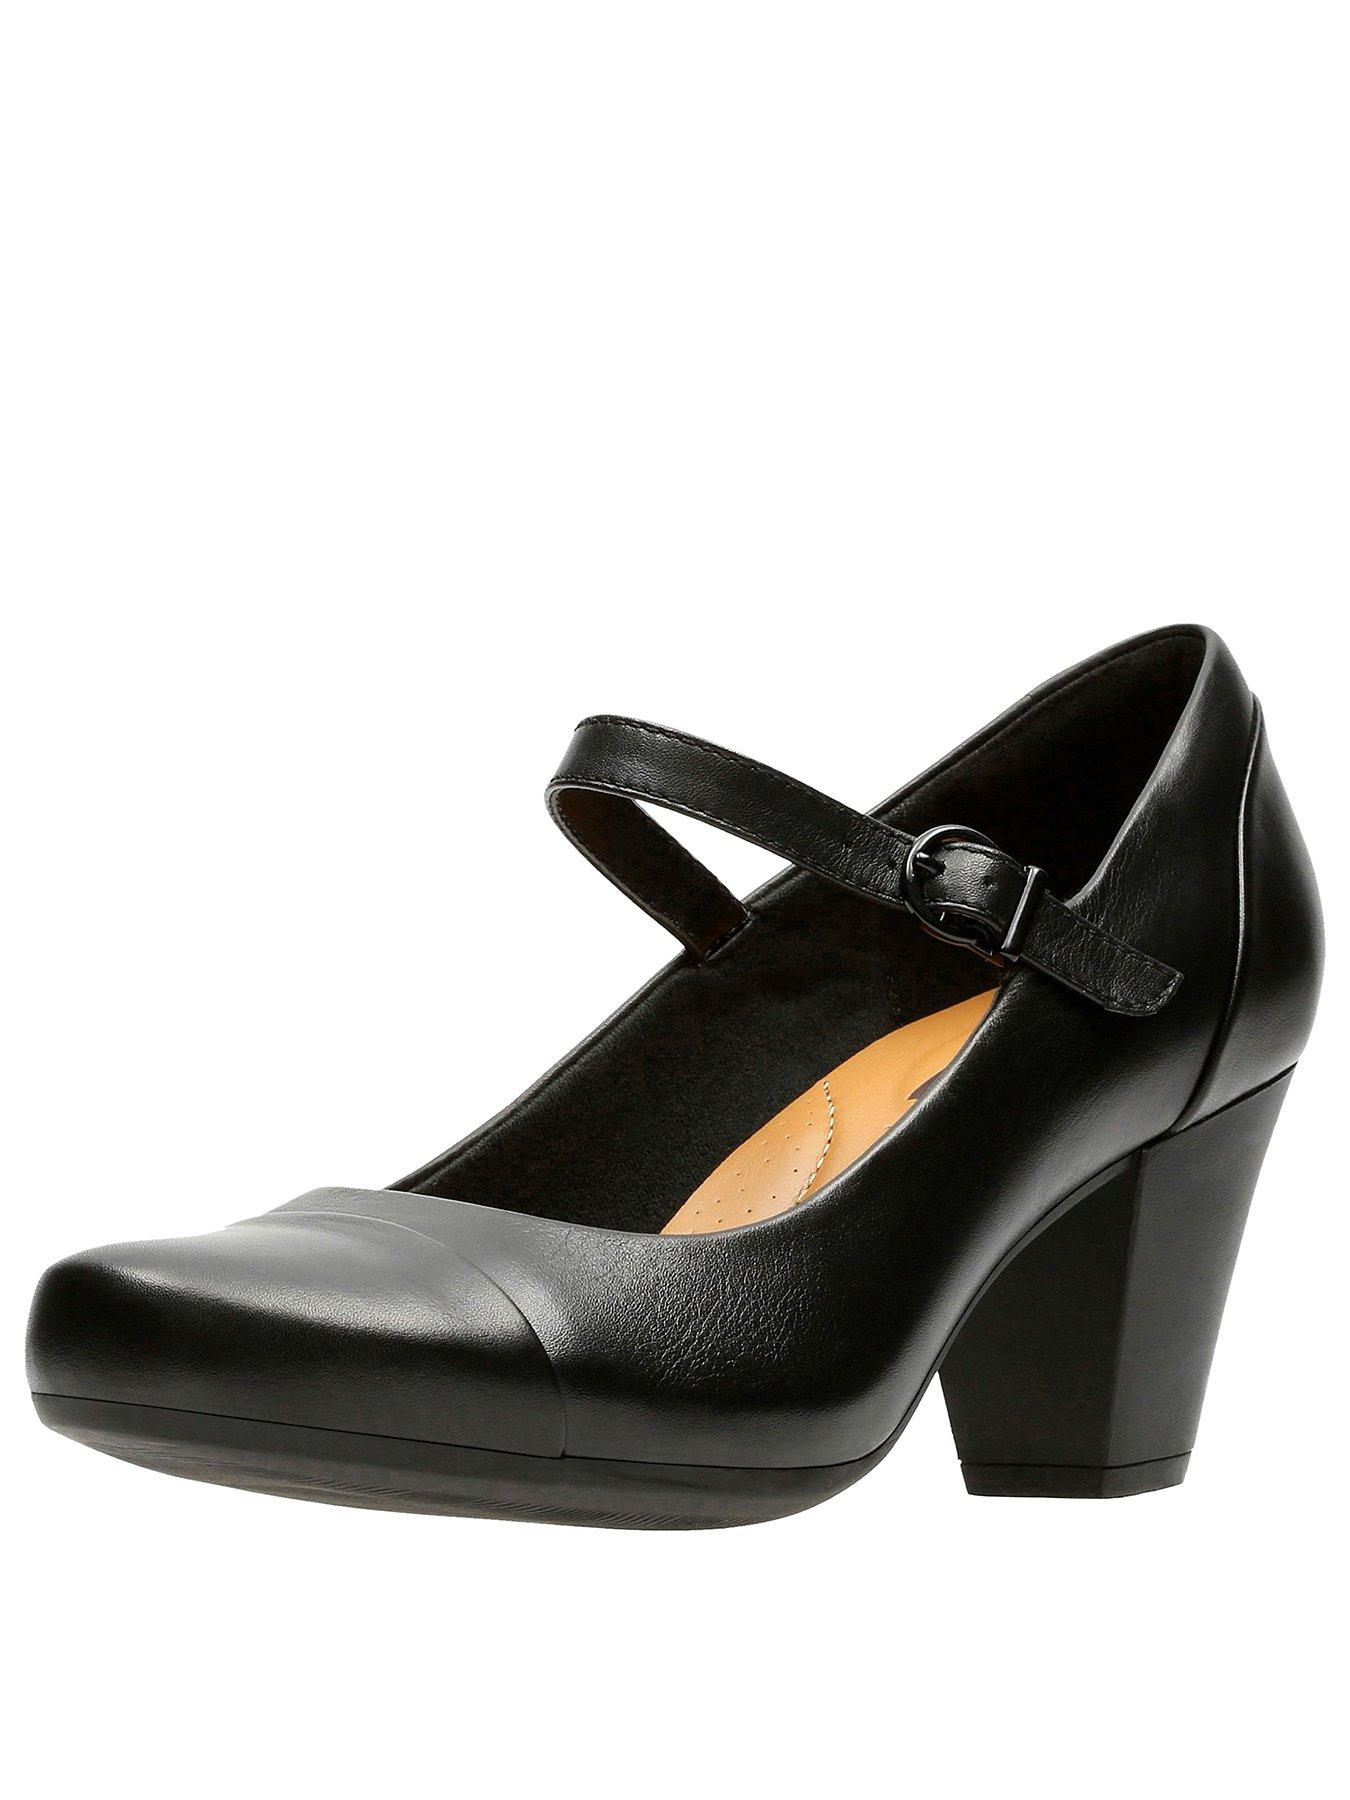 Clarks Garnit Tianna Mary Jane Heeled Shoe